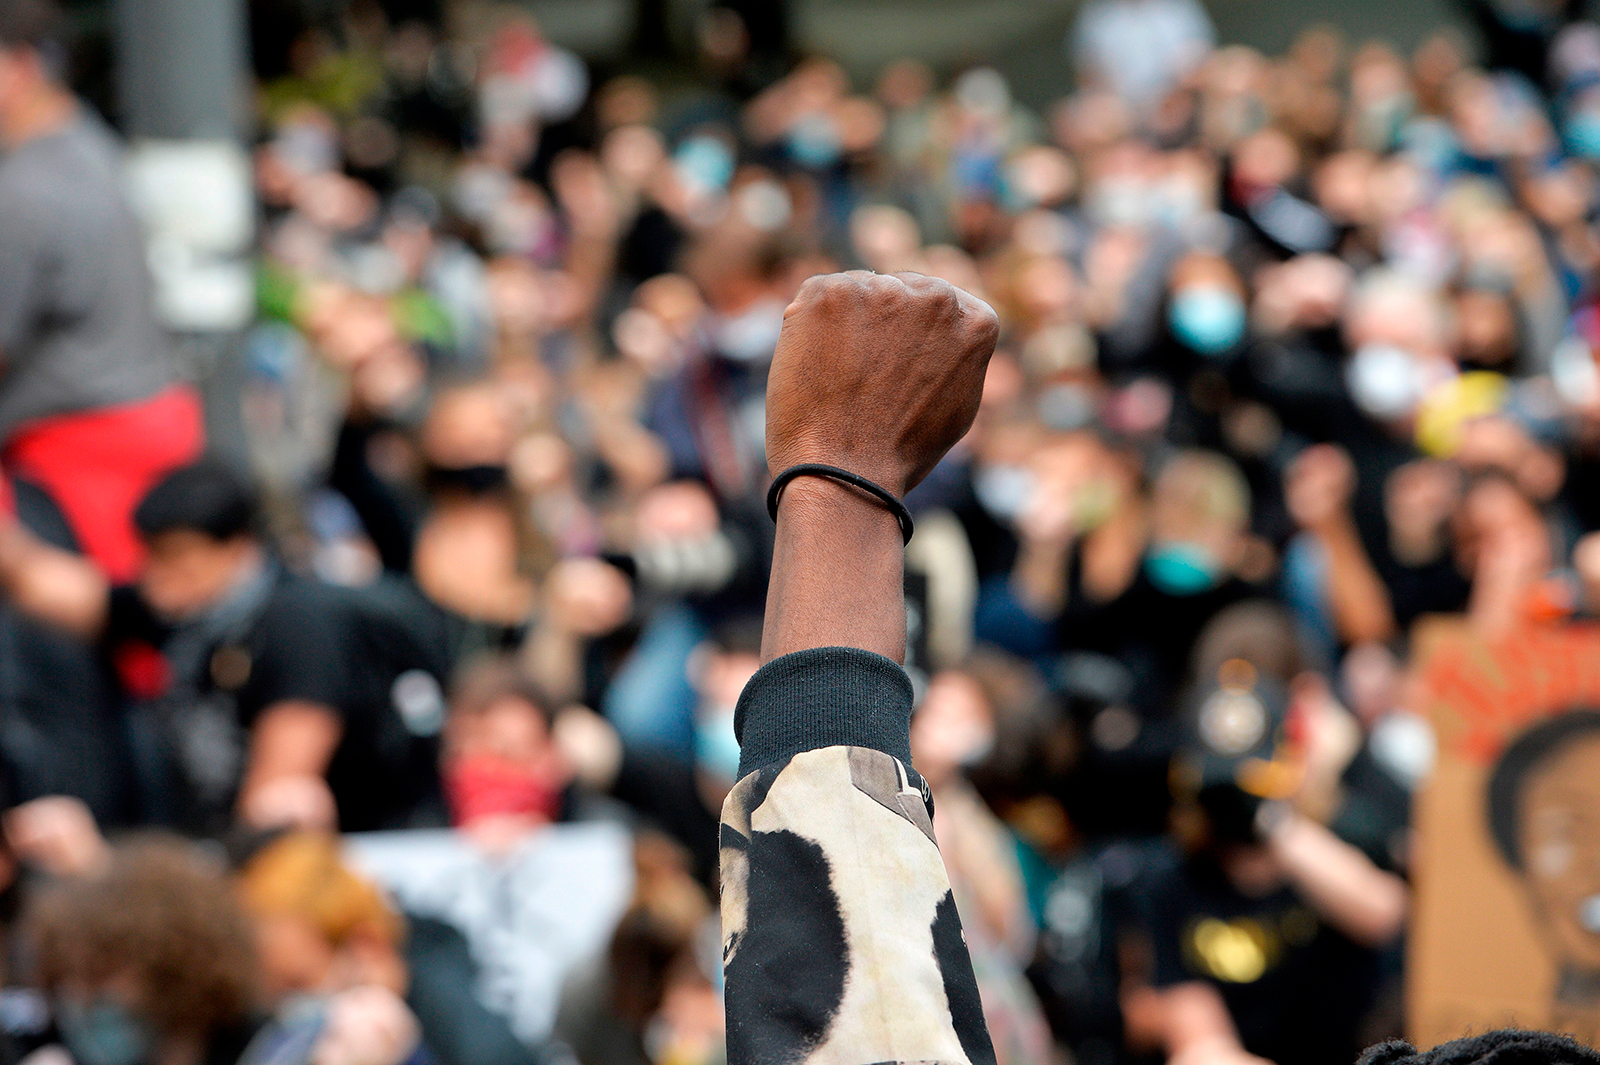 Protesters take a knee and raise their fists in a moment of silence for George Floyd and other victims of police brutality in Boston, Massachusetts on June 7.